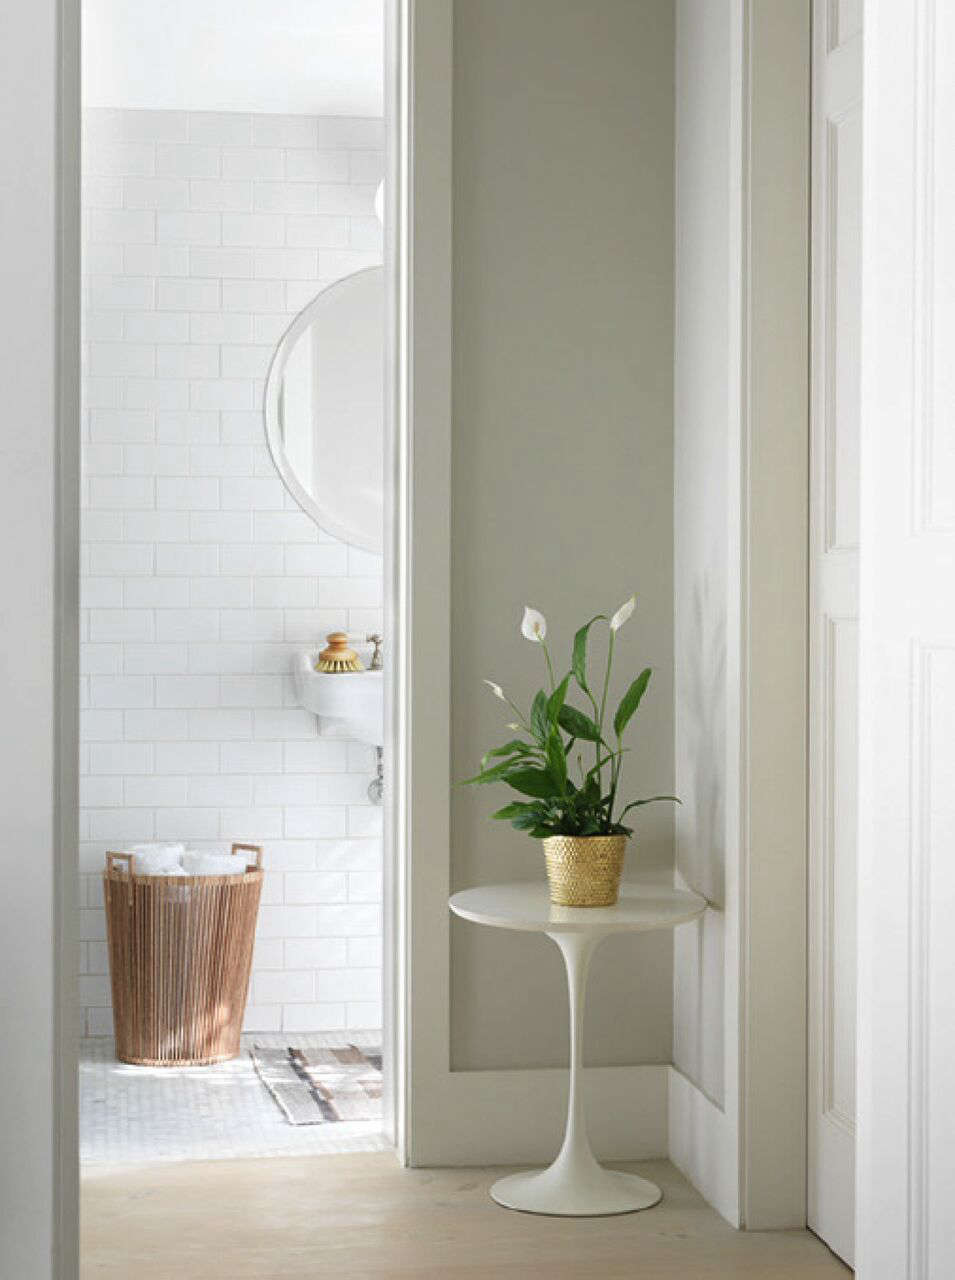 A Notting Hill Townhouse Tailored for Living by Charles Mellersh Subway tiled bath in a remodeled historic Notting Hill townhouse, interior design by Charles Mellersh   Remodelista